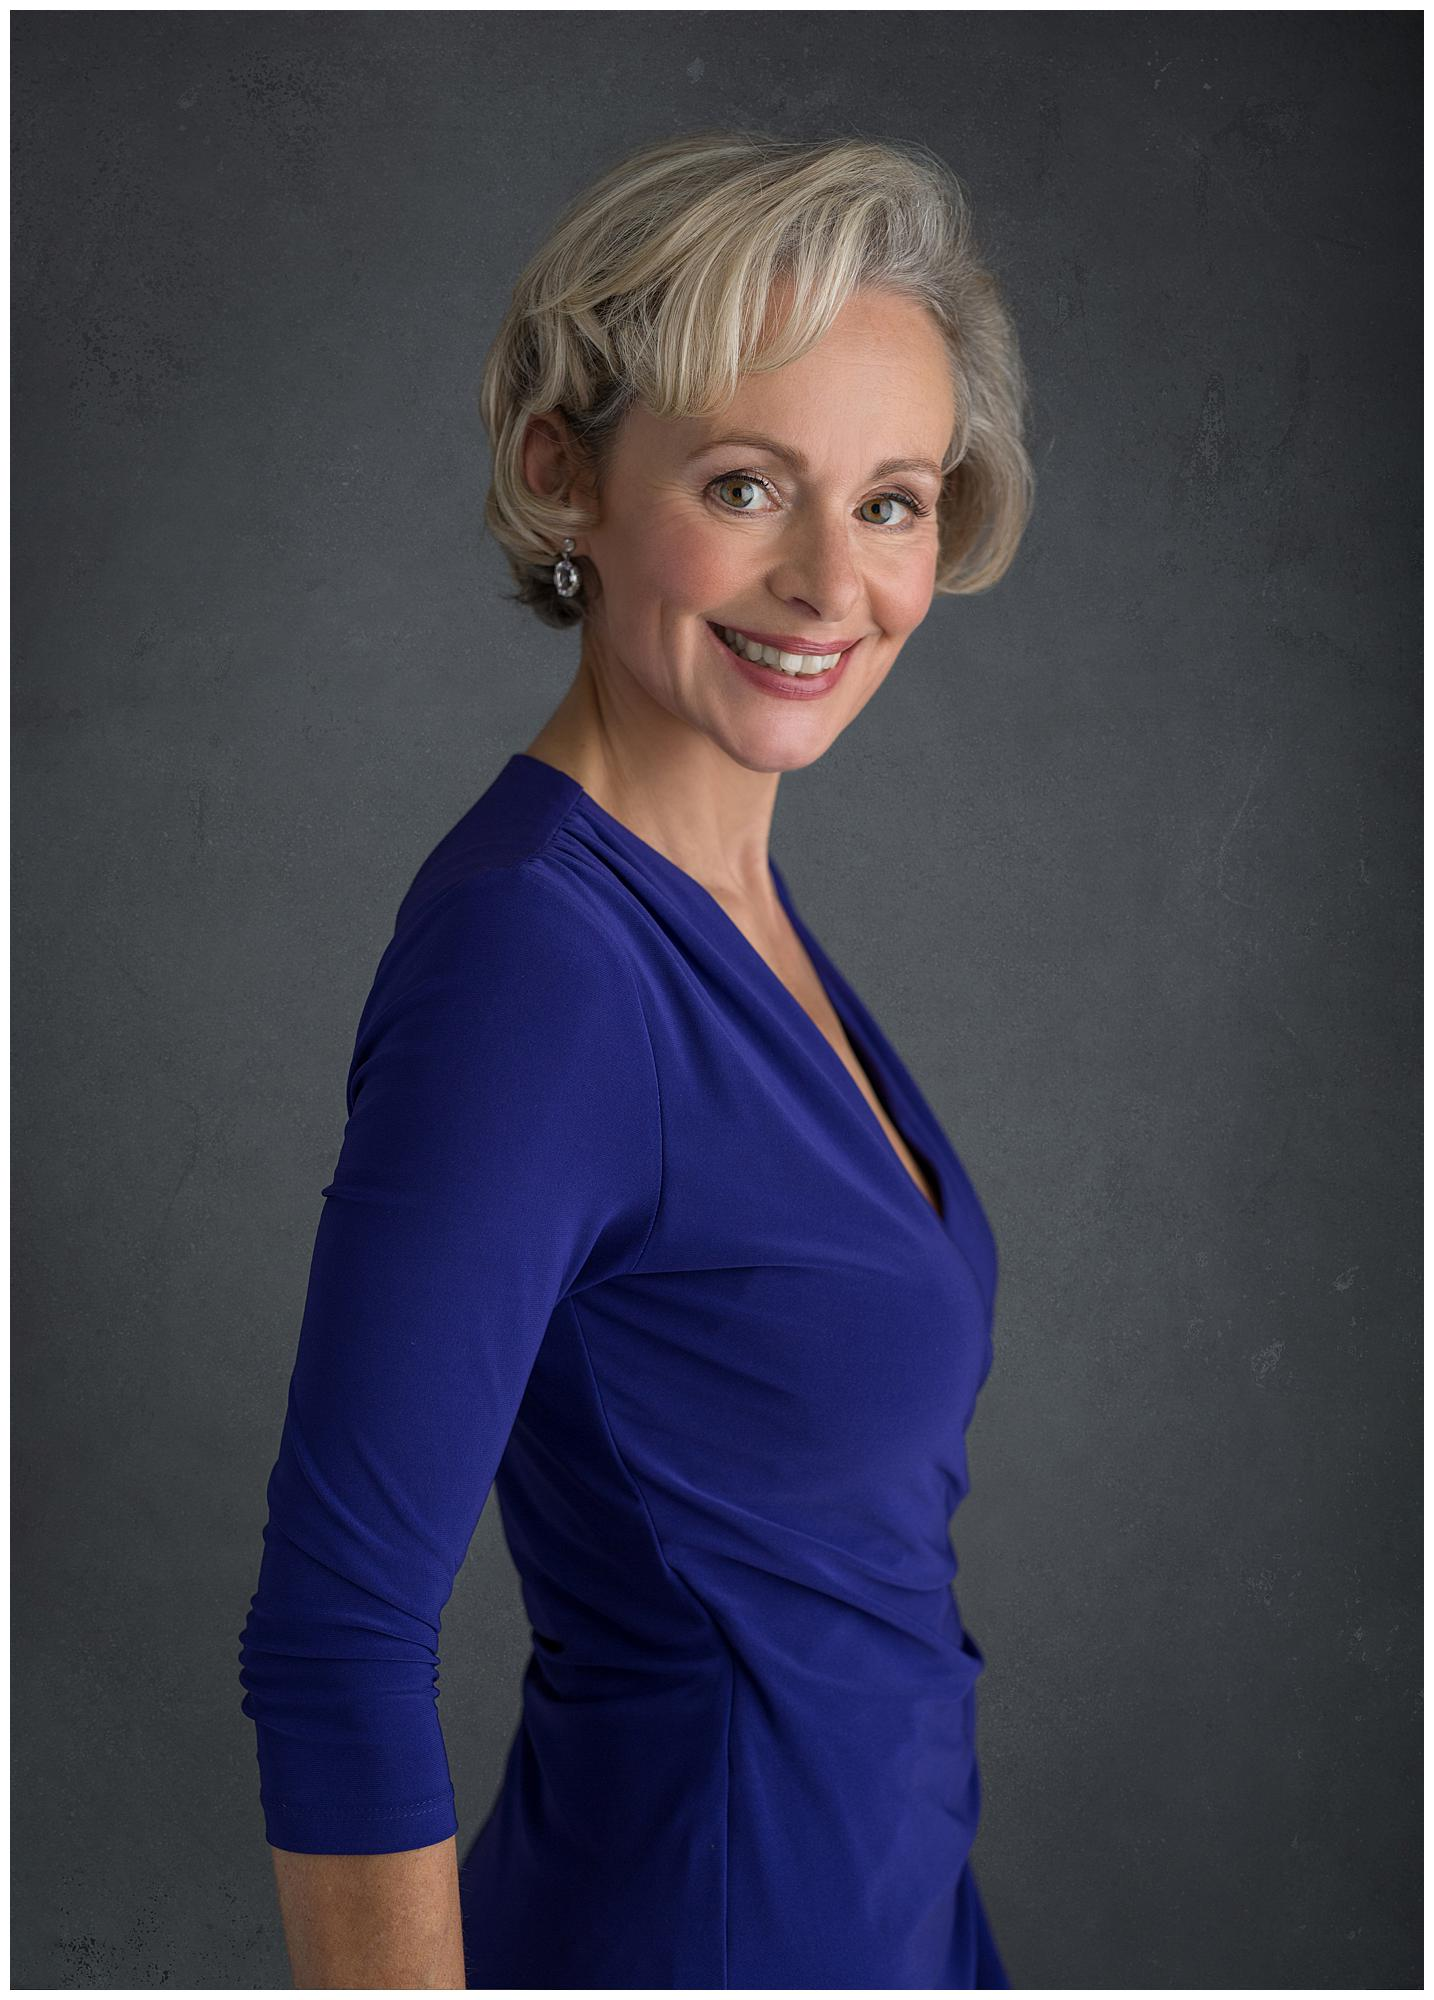 Woman in a blue dress smiles during a Headshot Photoshoot in Suffolk